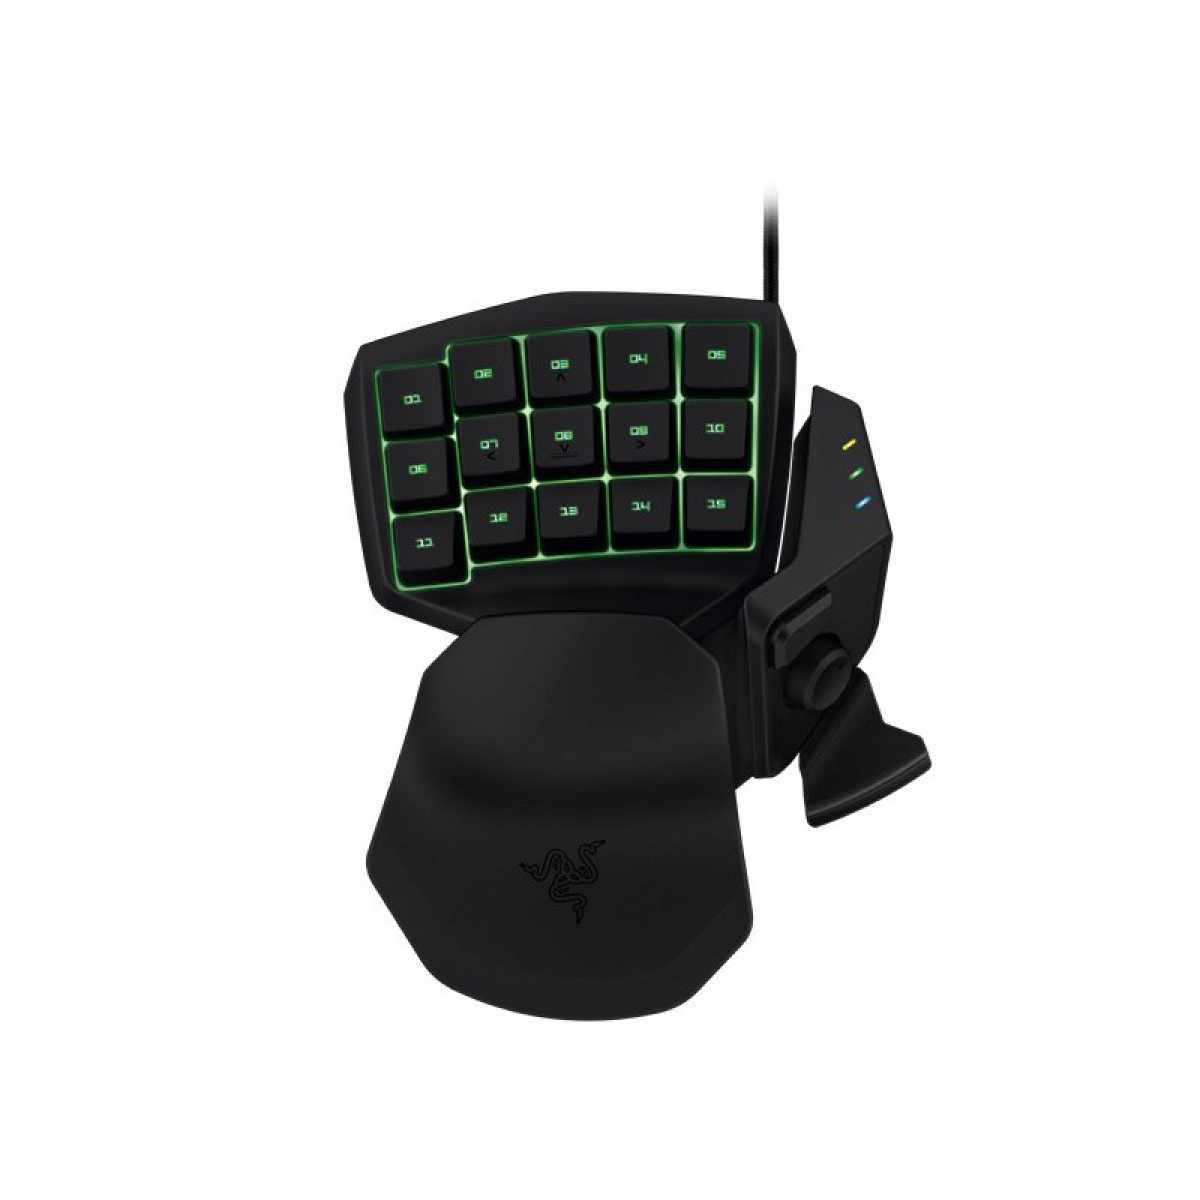 Razer Tartarus Gaming Keyboard